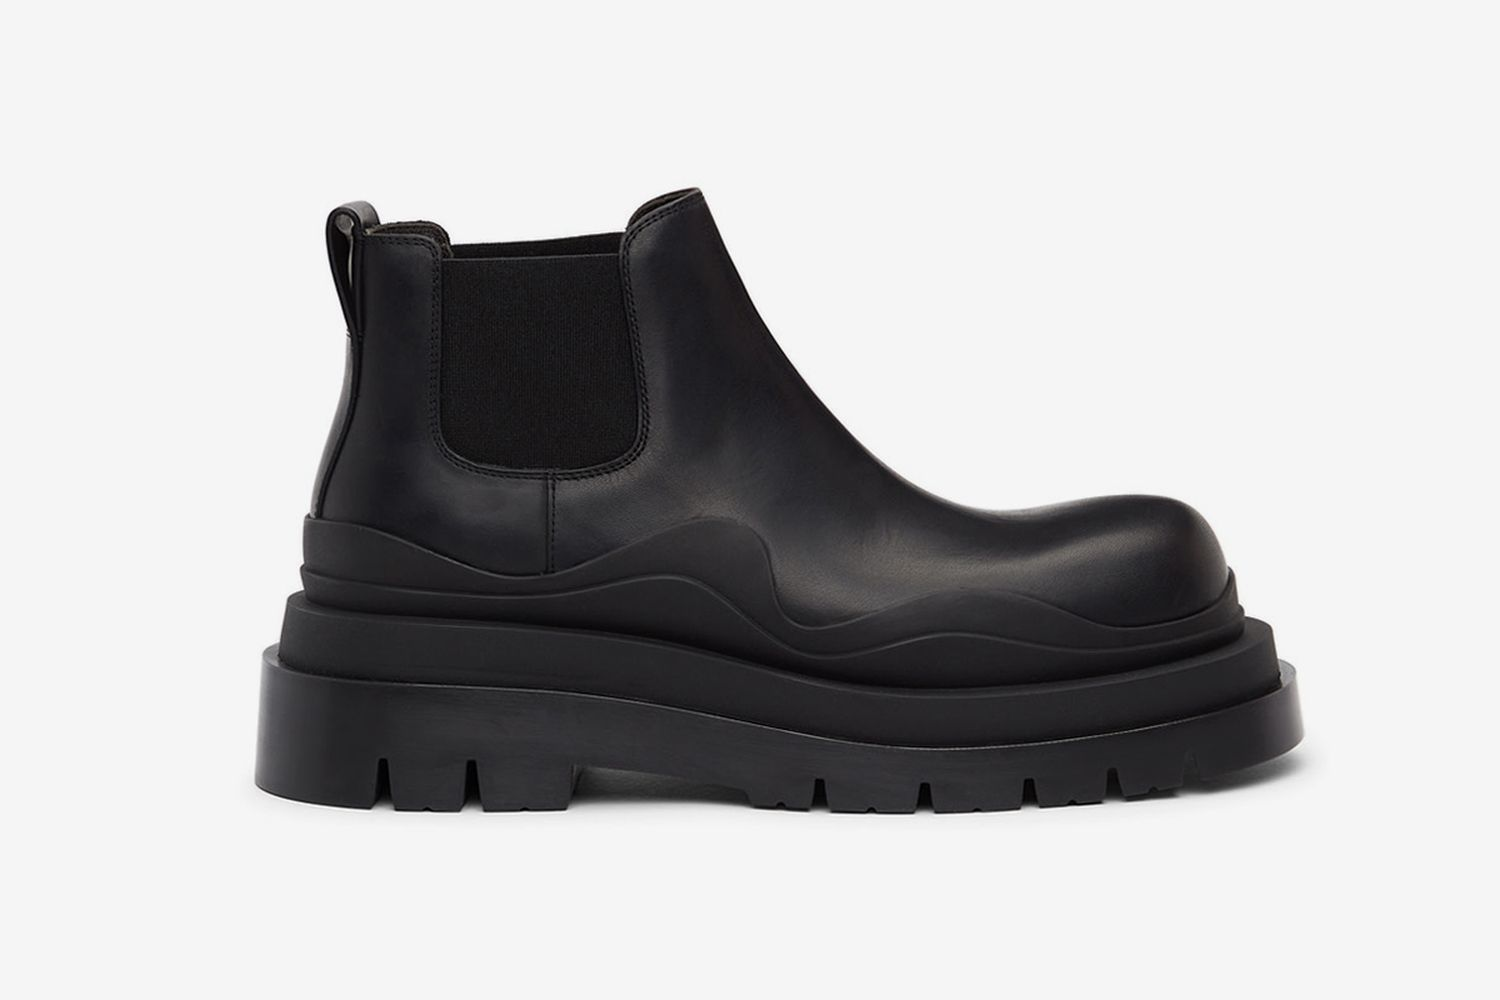 Low 'The Tire' Boots